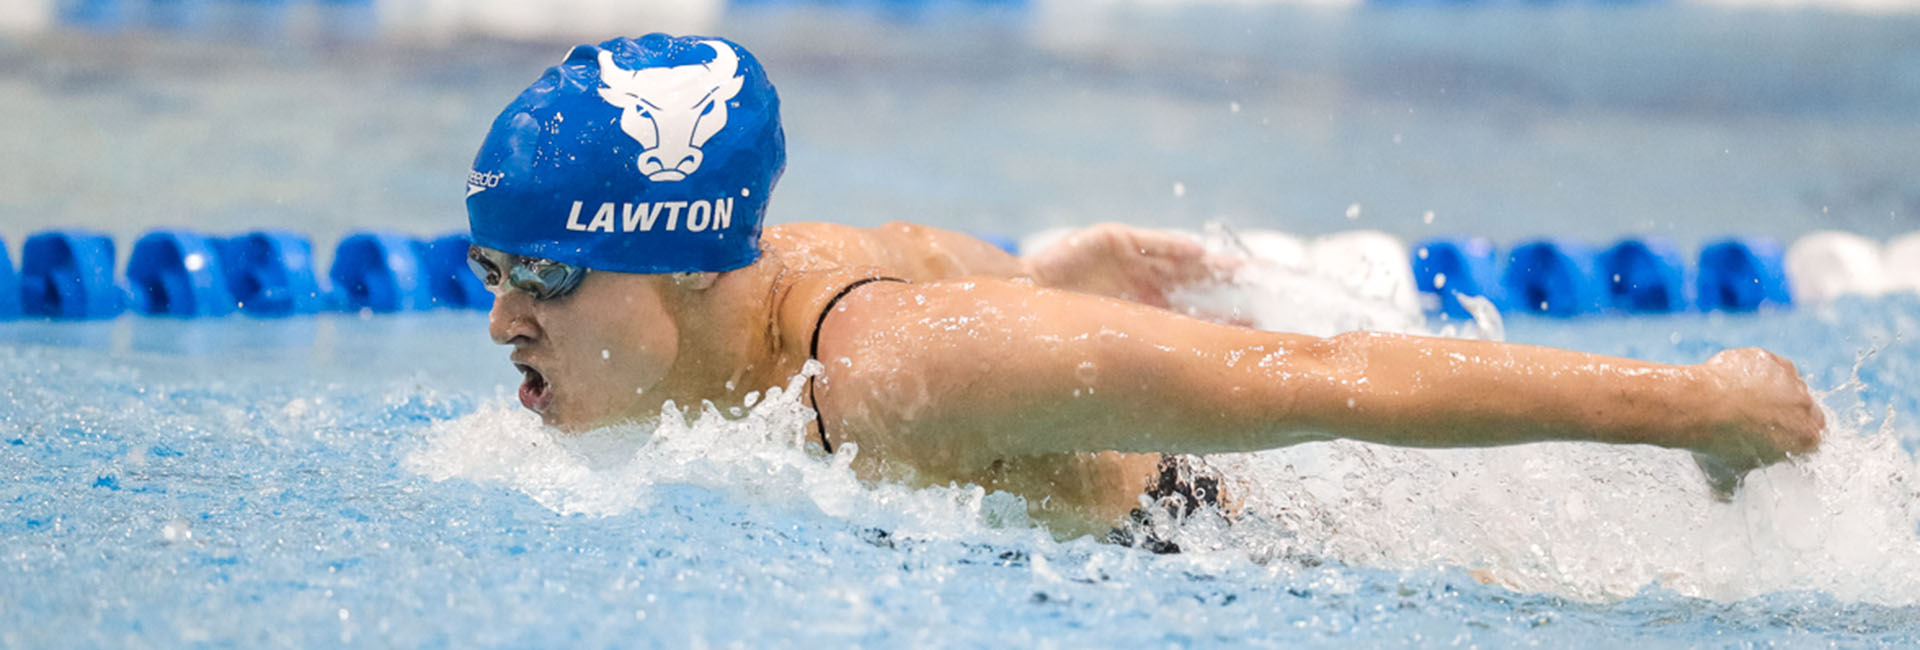 Photo of UB Swimming athlete Jillian Lawton